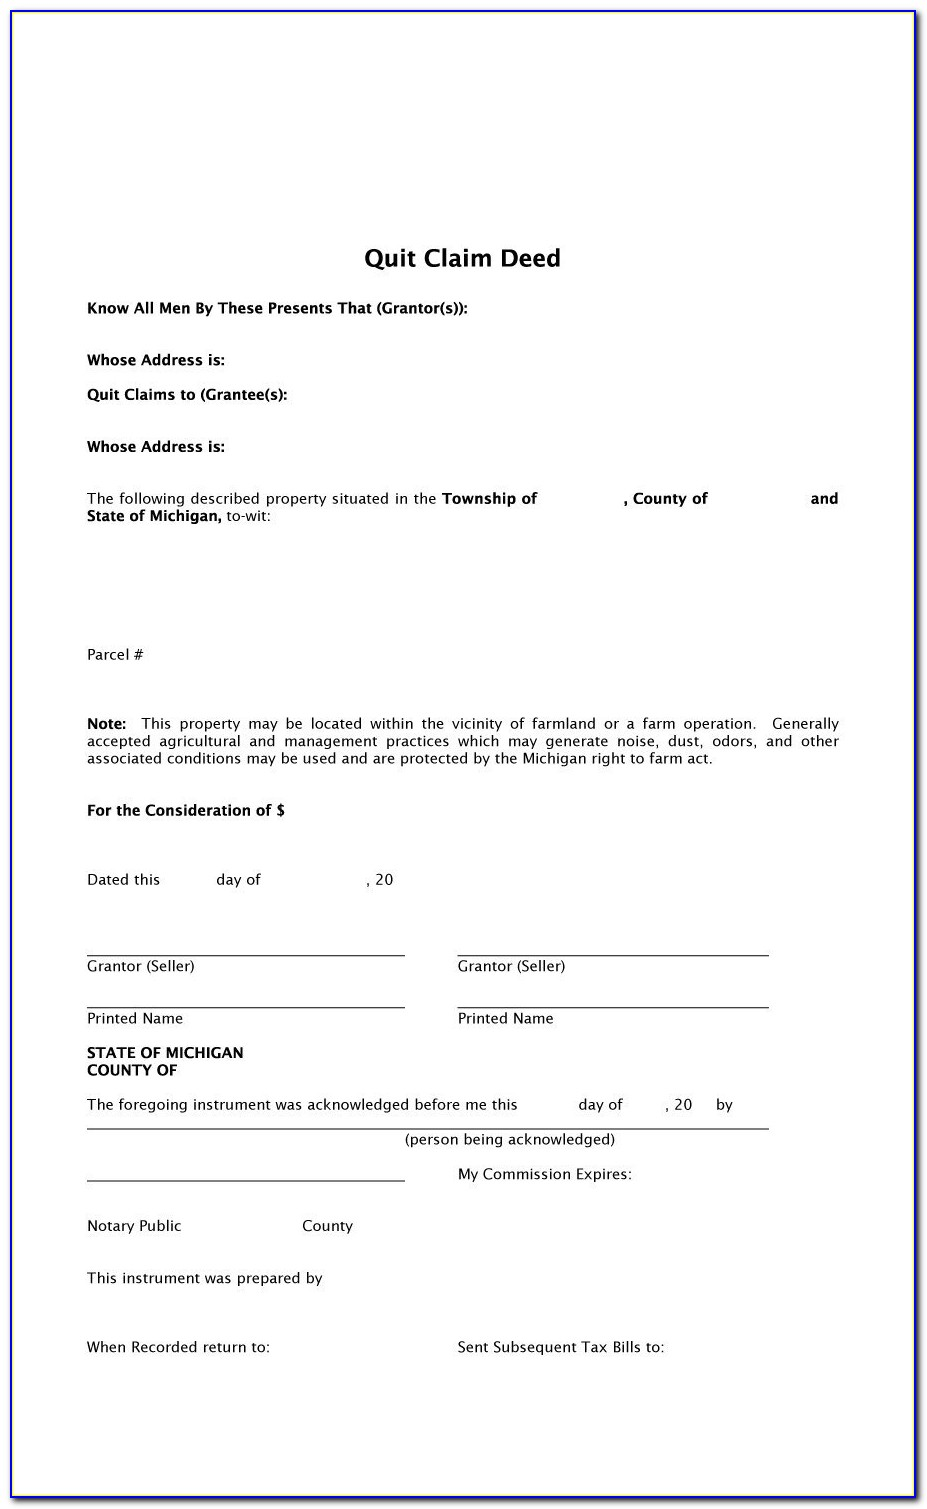 Quit Deed Claim Form Indiana